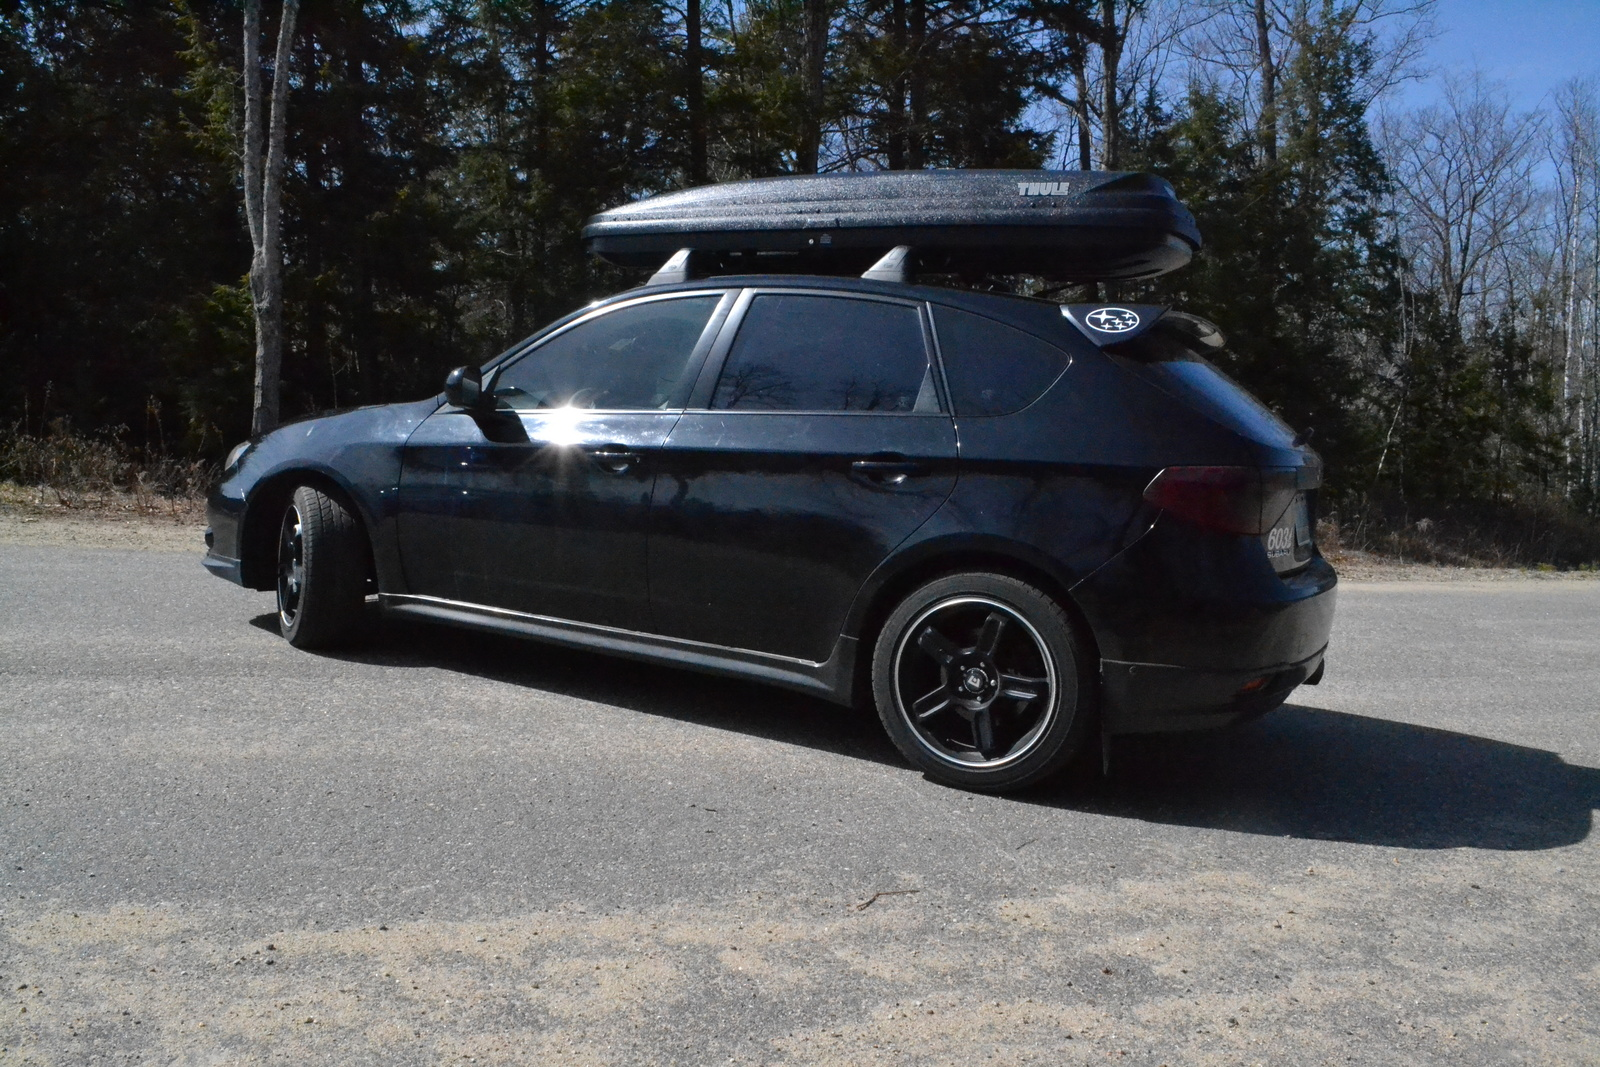 2008 subaru impreza exterior pictures cargurus. Black Bedroom Furniture Sets. Home Design Ideas